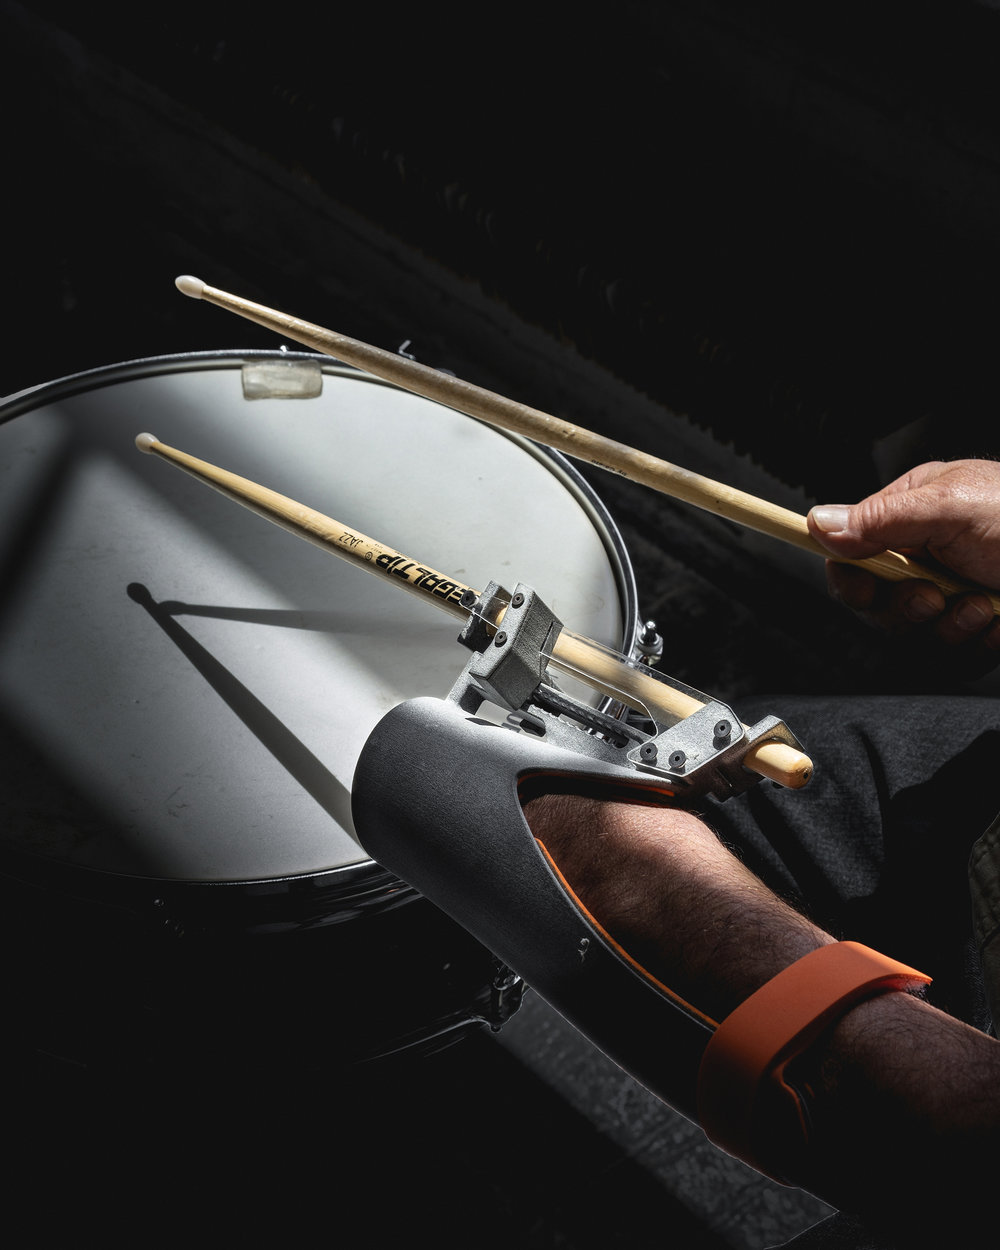 PARADIDDLE Drumming Prosthesis Collaborated with renowned amputee drummer Greg Anton